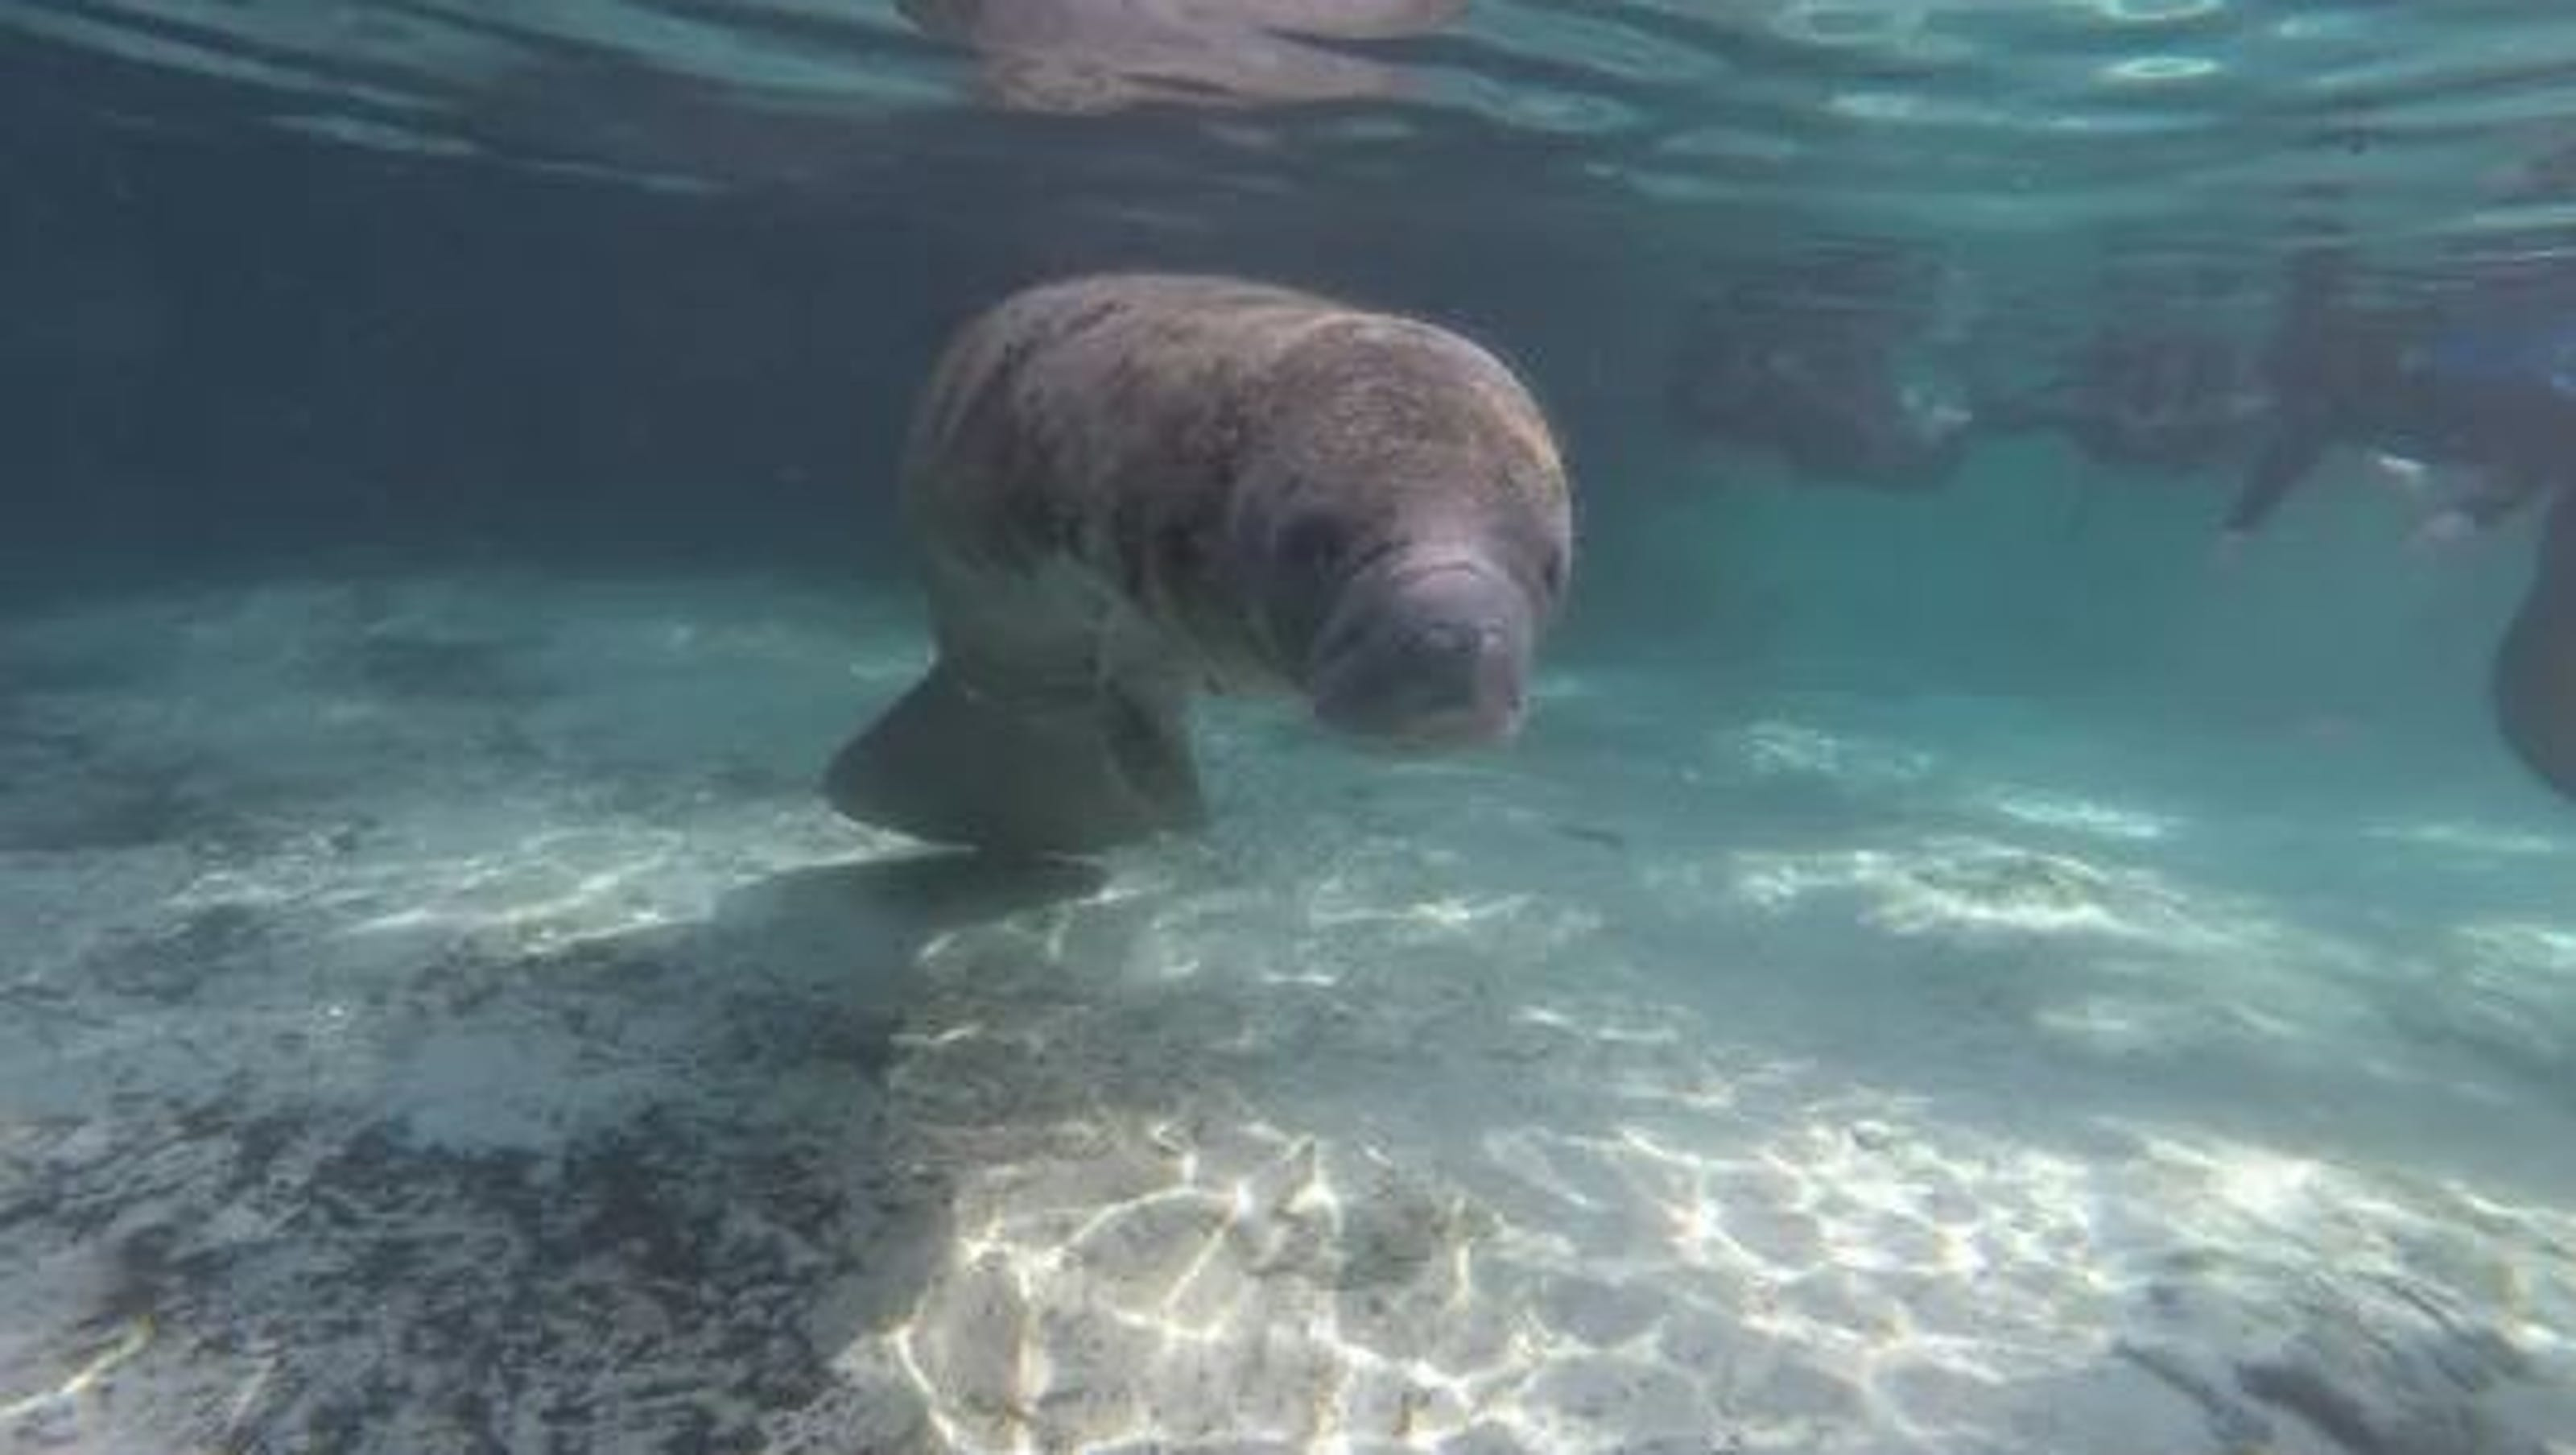 Boating Safety Manatee Technology And Shark Science Top The